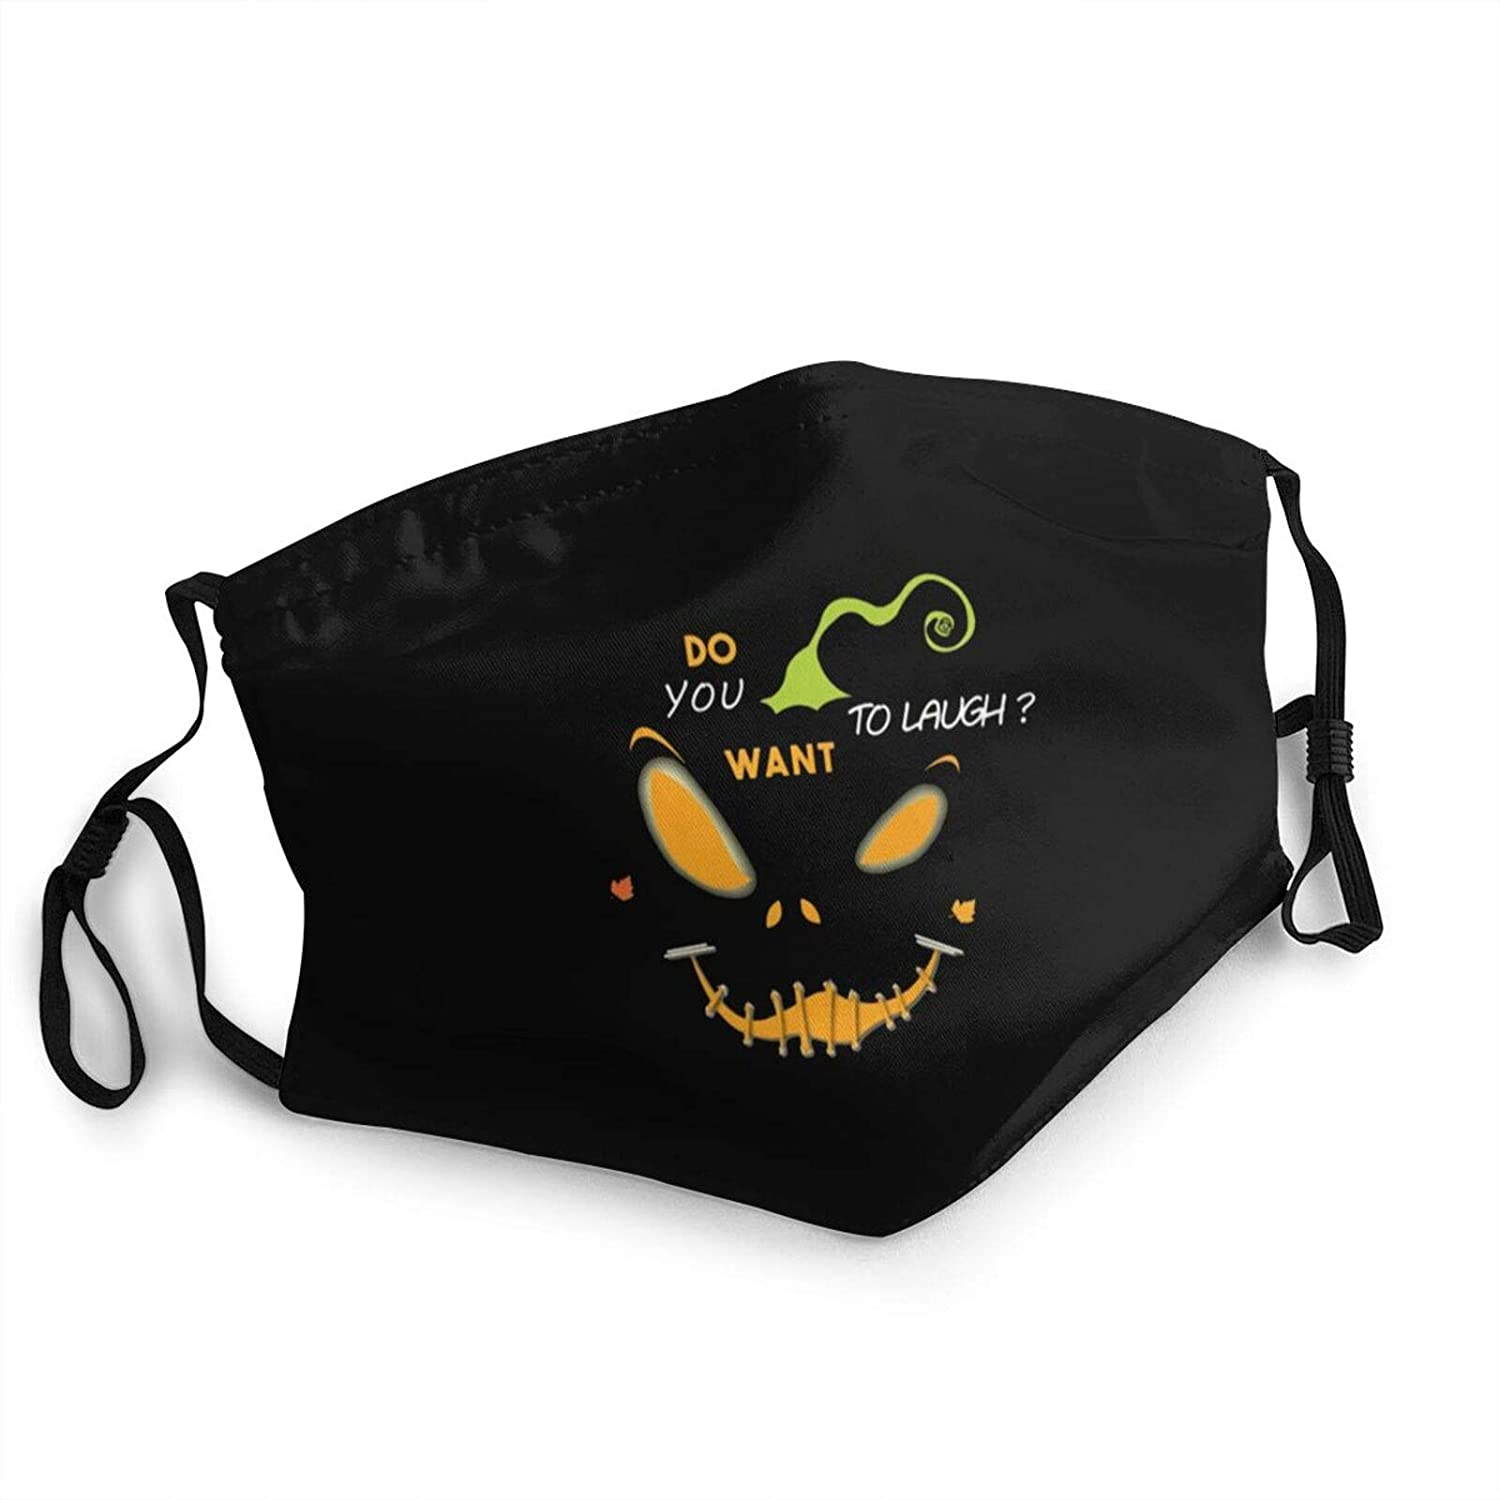 Adult Kids Cloth Face Mask Smile - Design Halloween Dust Masks Reusable Balaclava for Outdoor